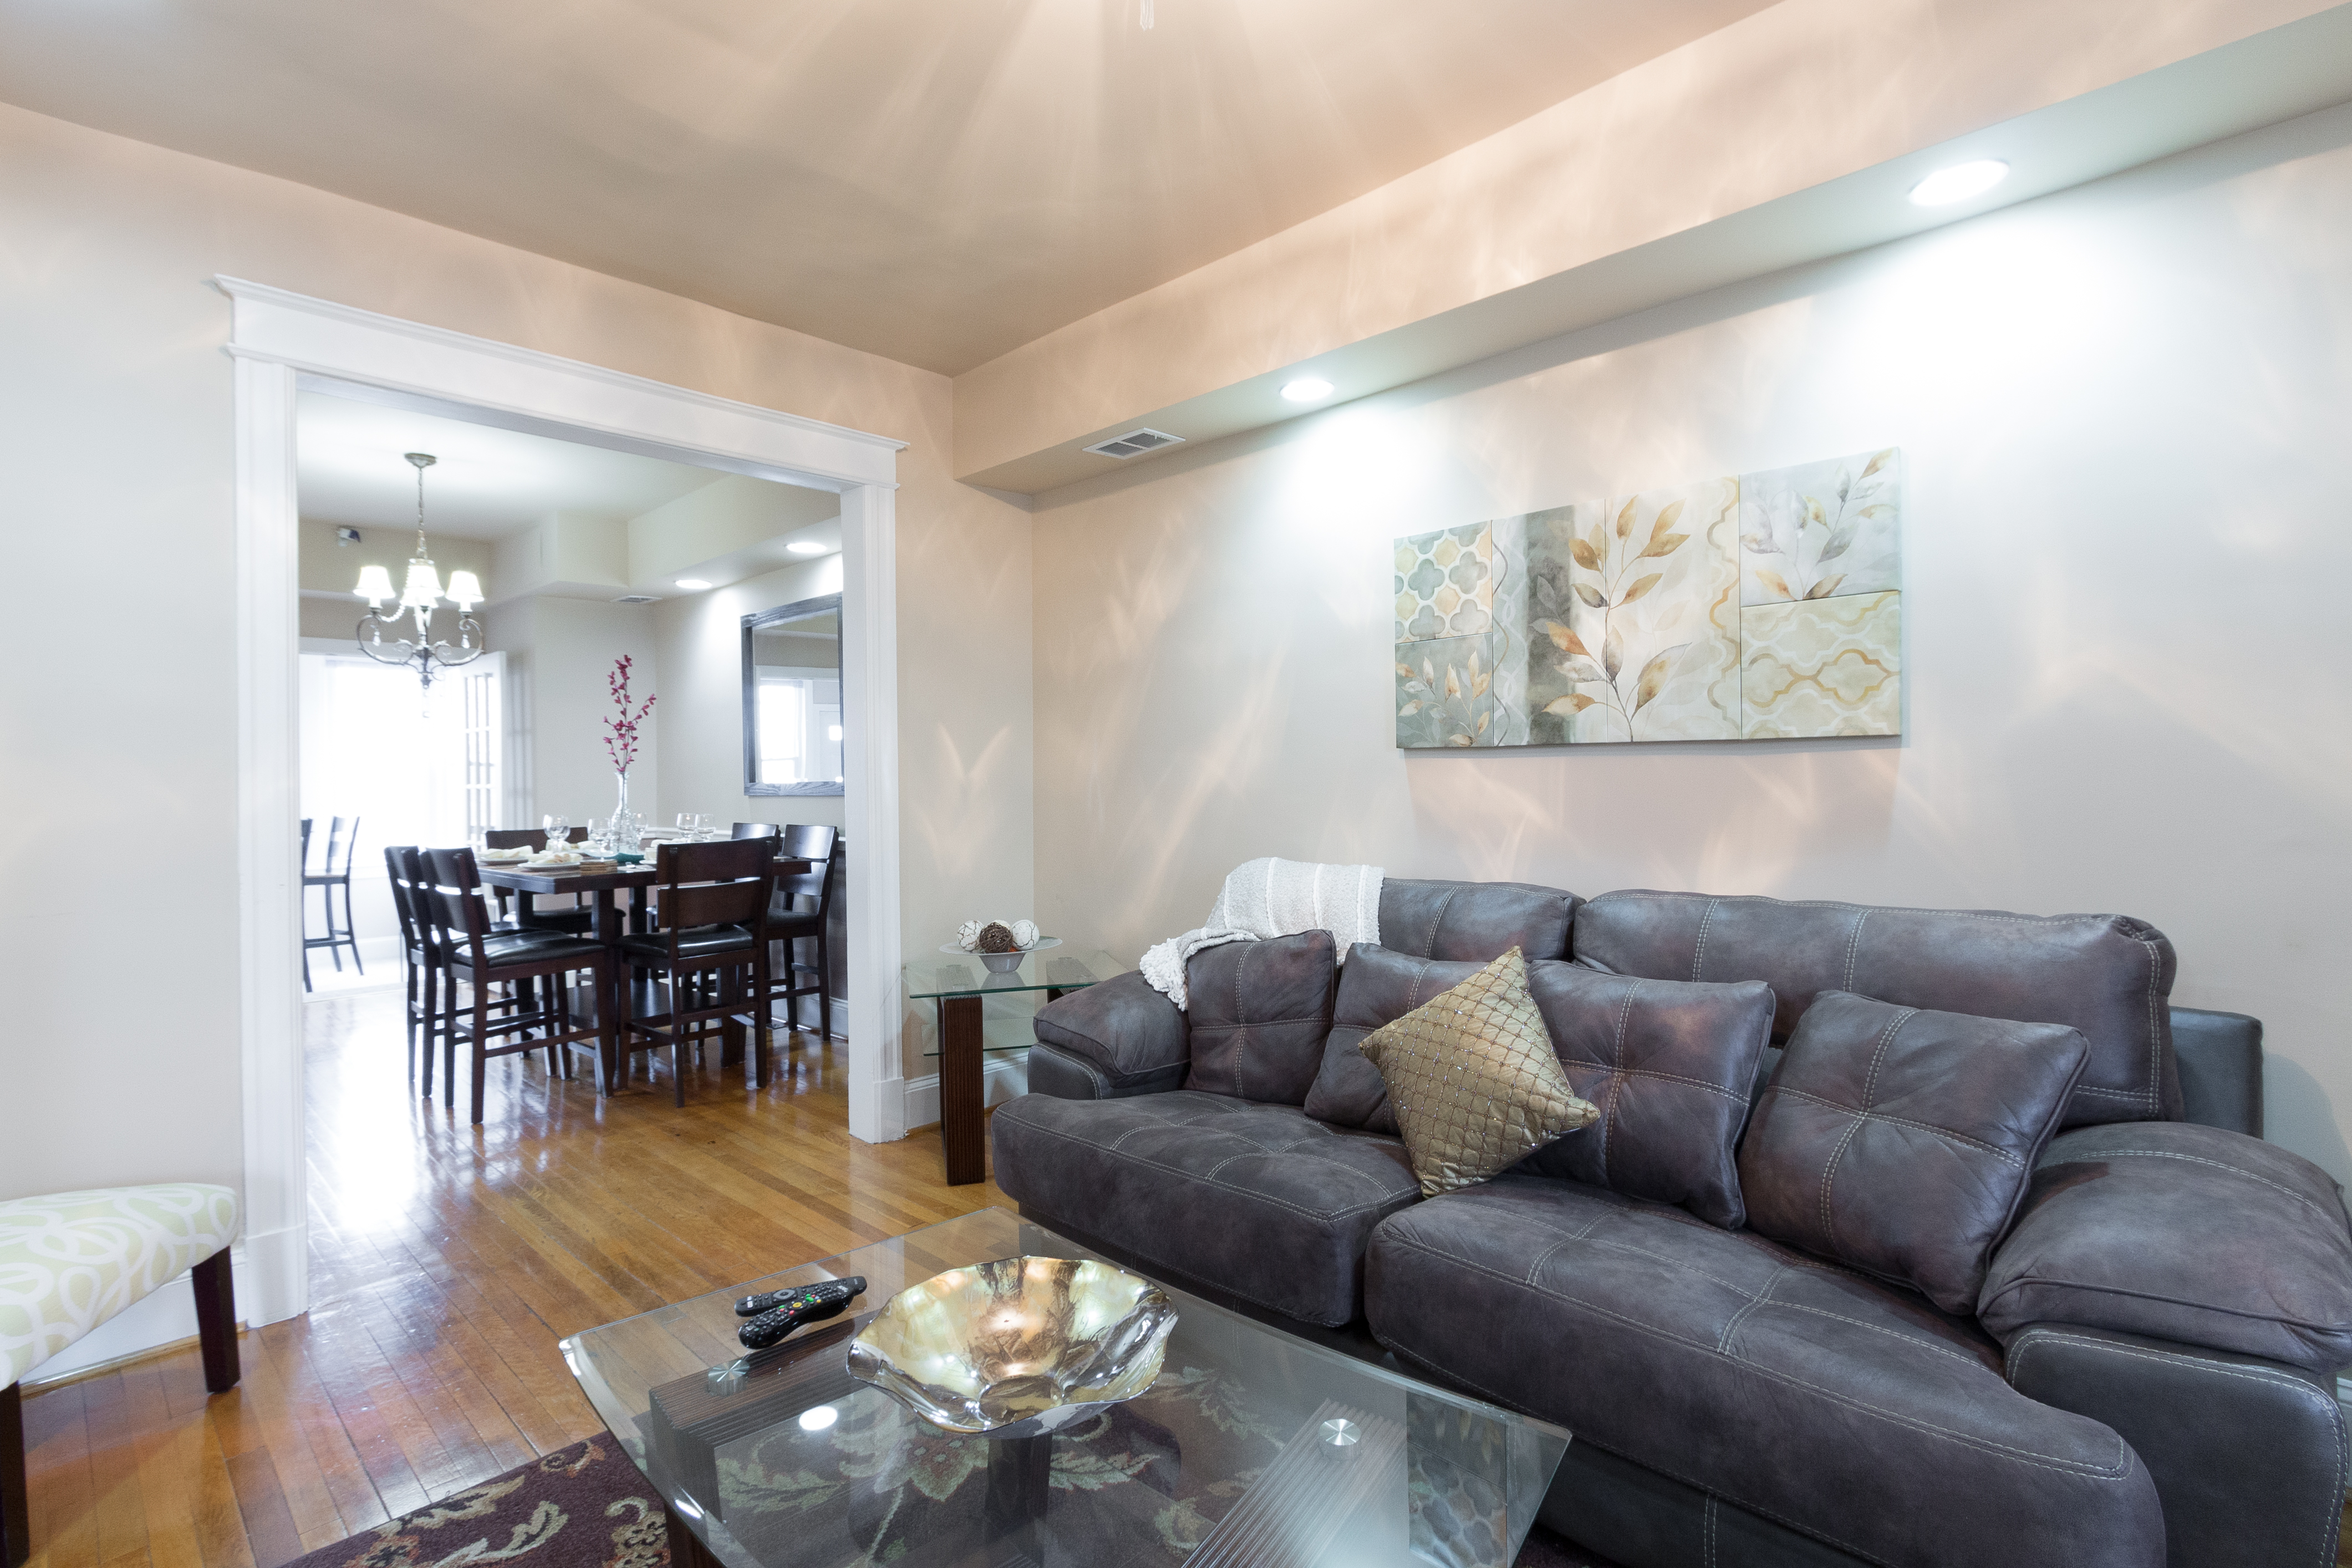 Luxury 4 Bedroom Home In Historic Washington Dc Townhouses For Rent In Washington District Of Columbia United States